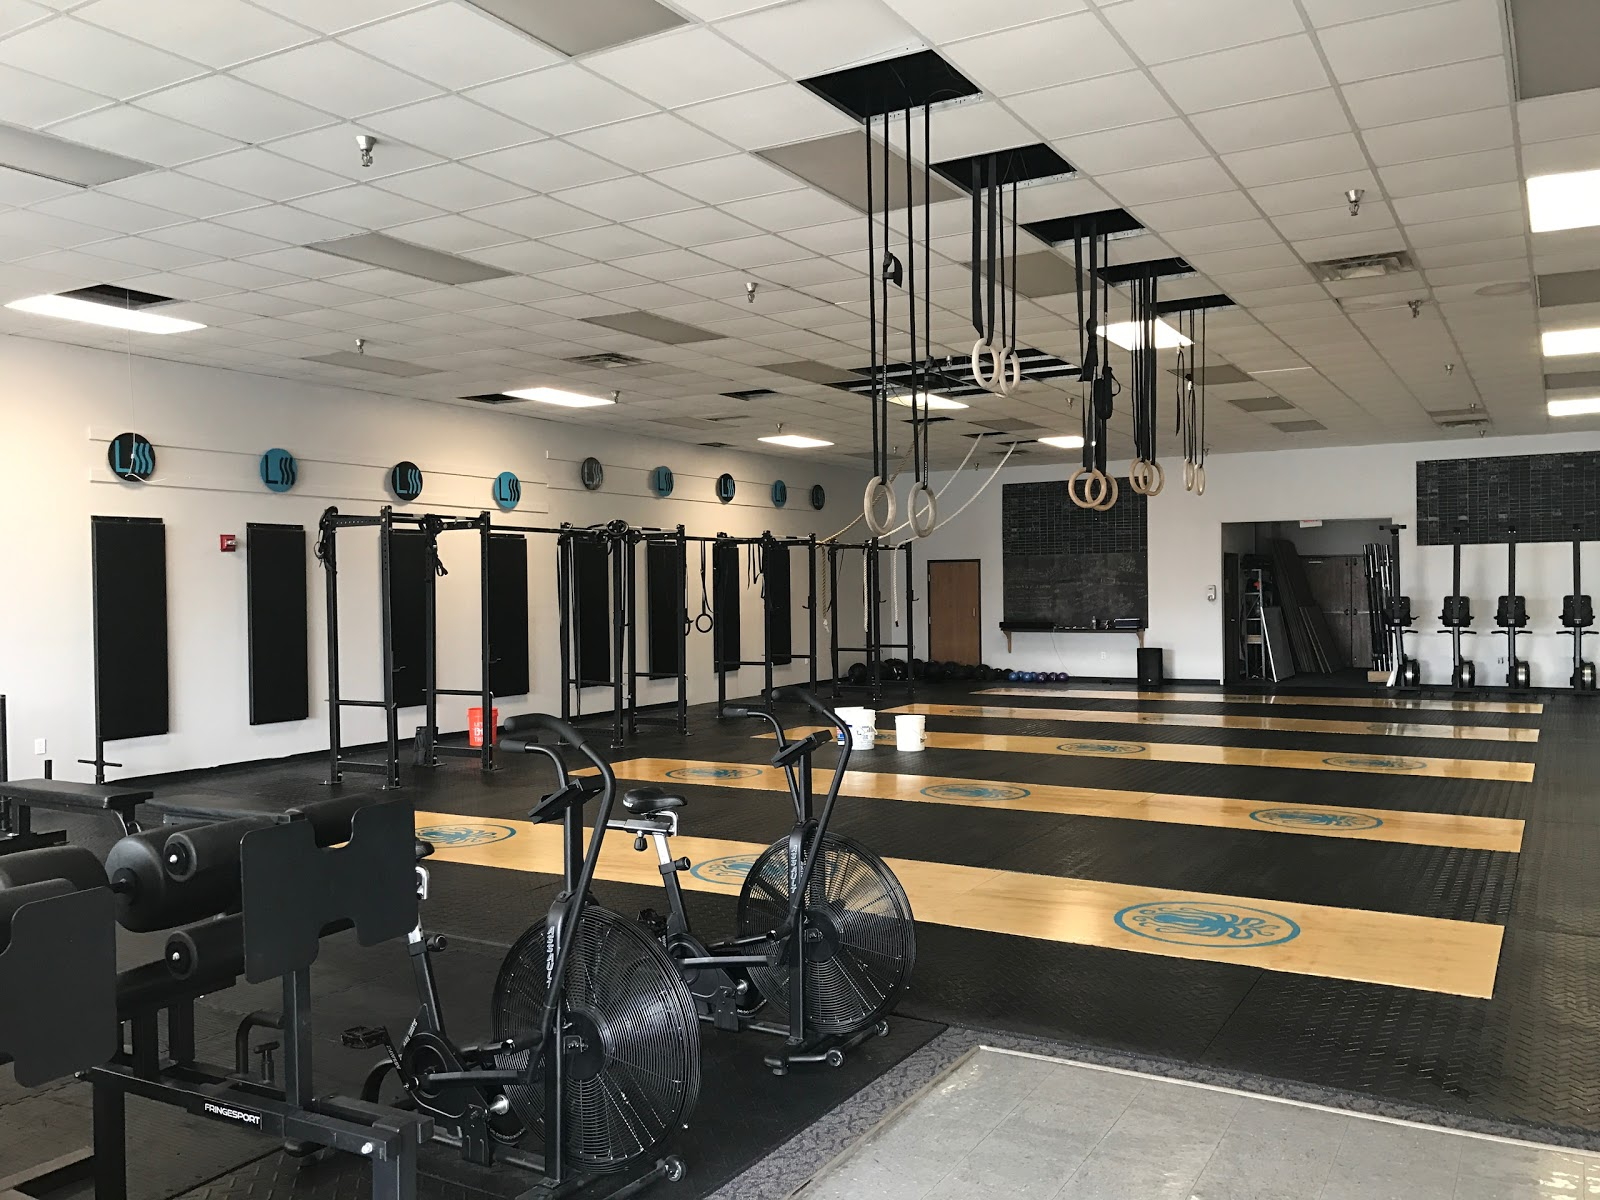 Gym Robbin S Fitness Center In Owosso Michigan